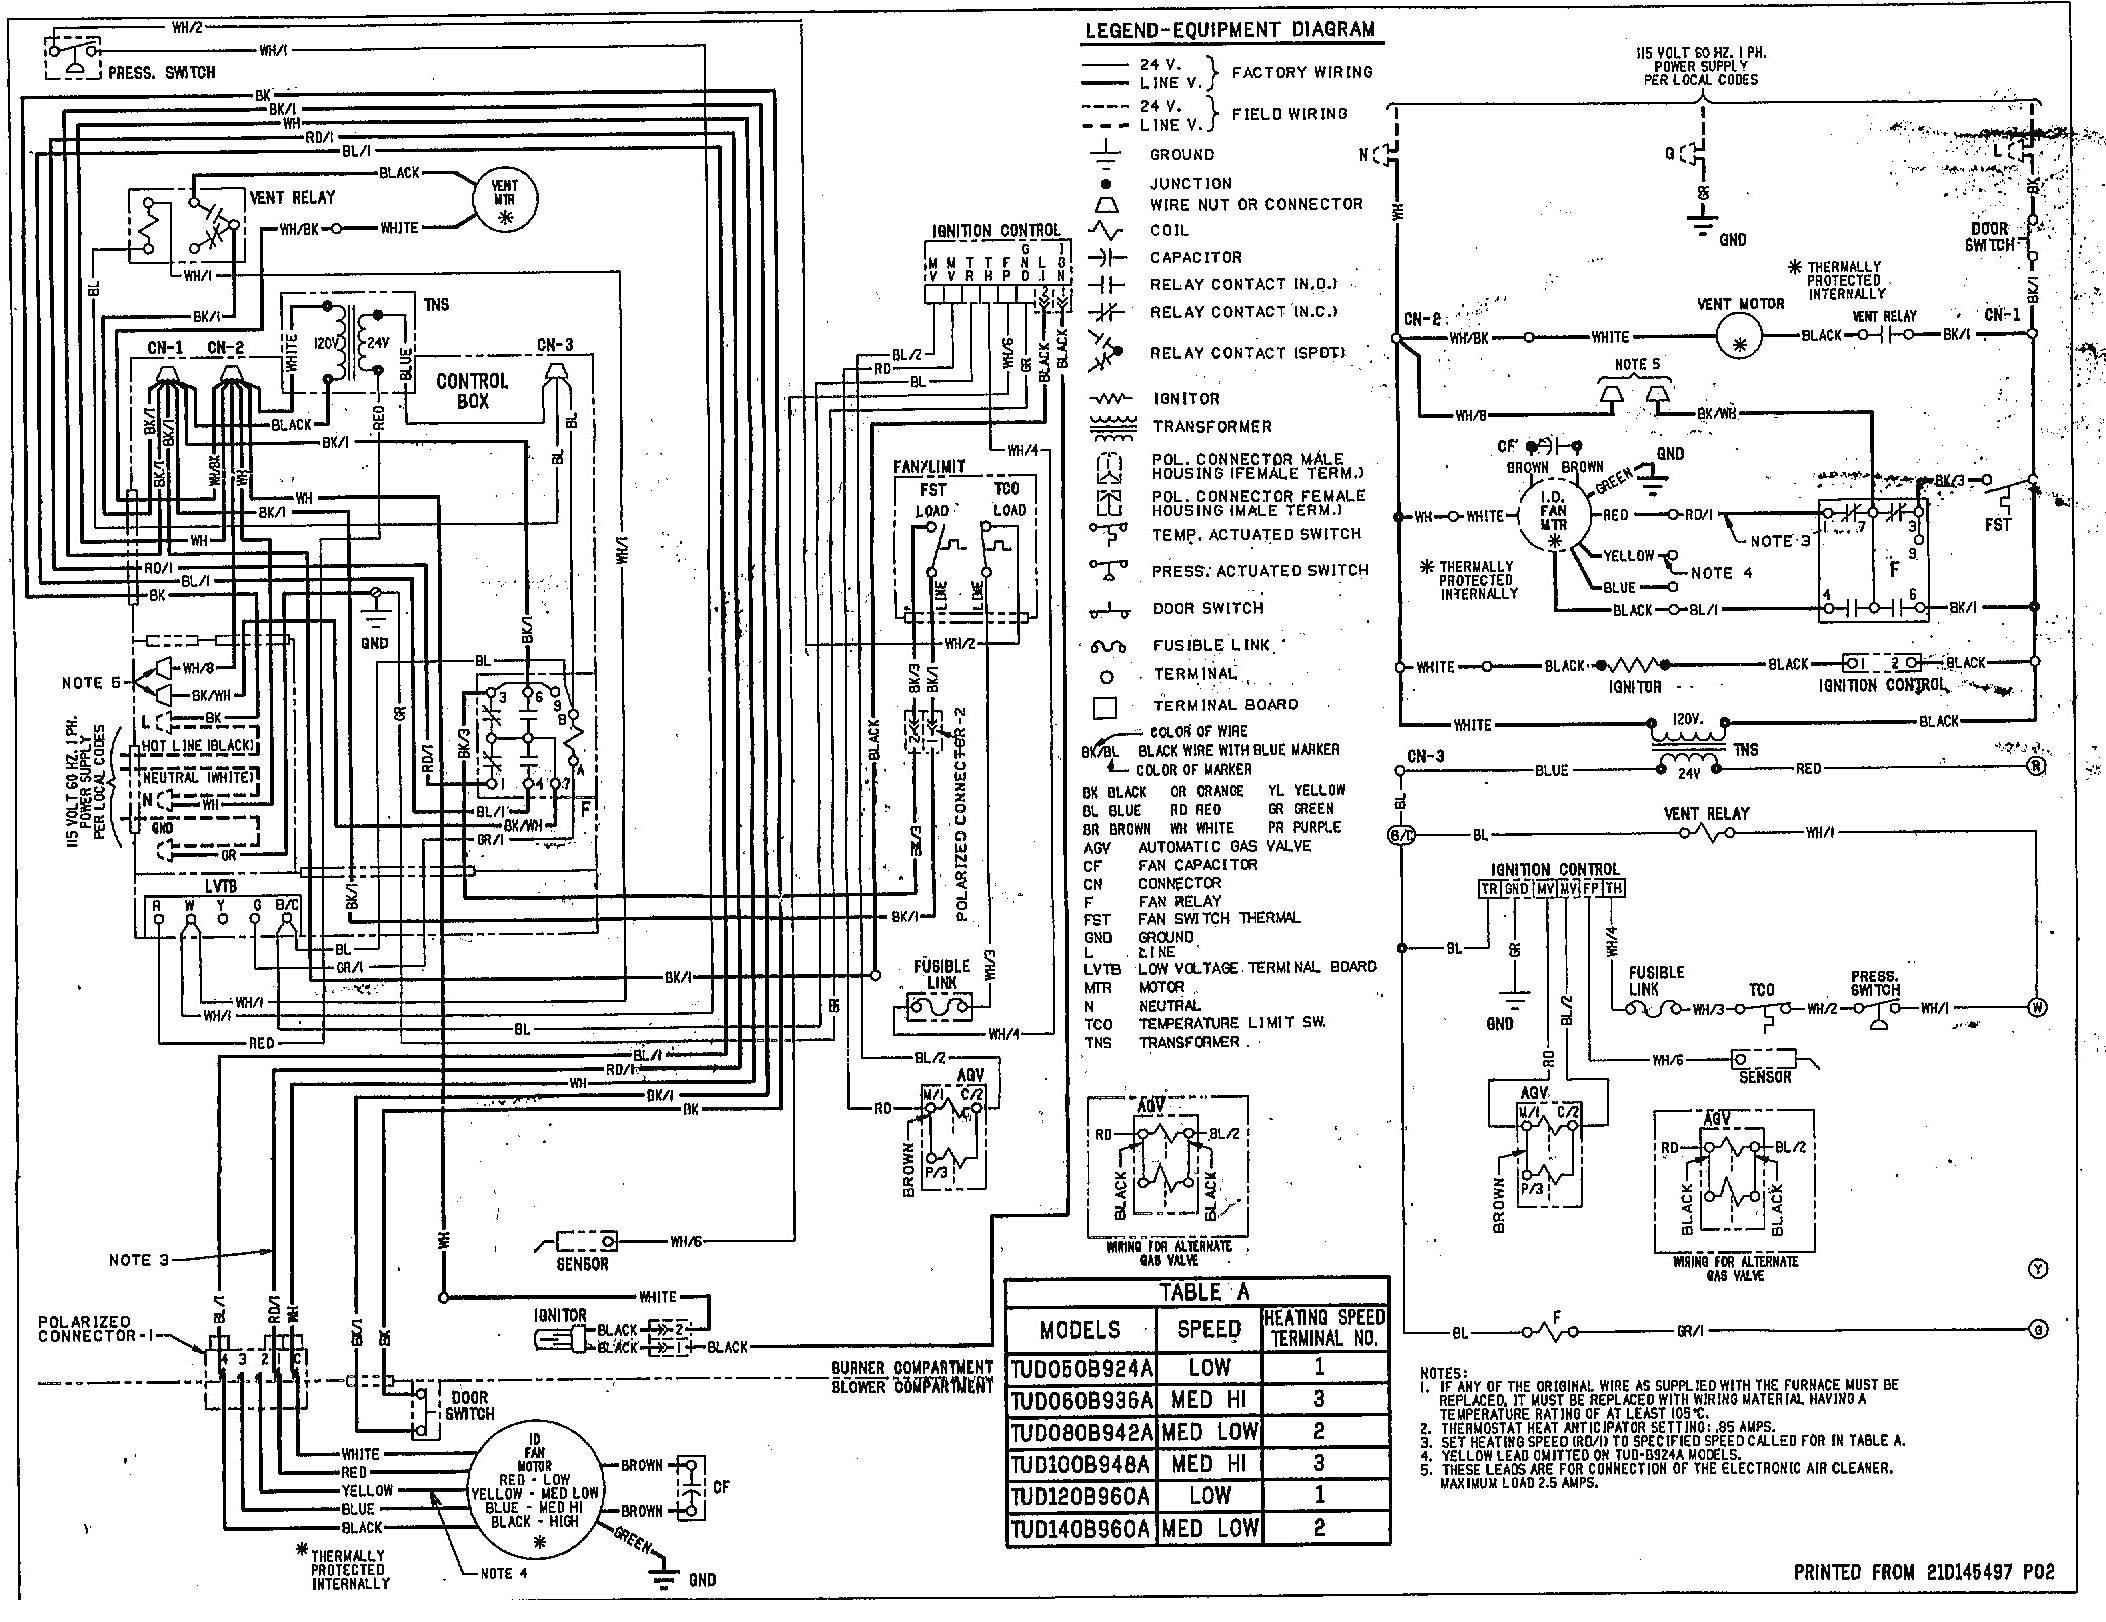 model trane for diagram wiring xcco60f1m wiring model trane diagram grca40 trane xl 1200 wiring diagram gallery